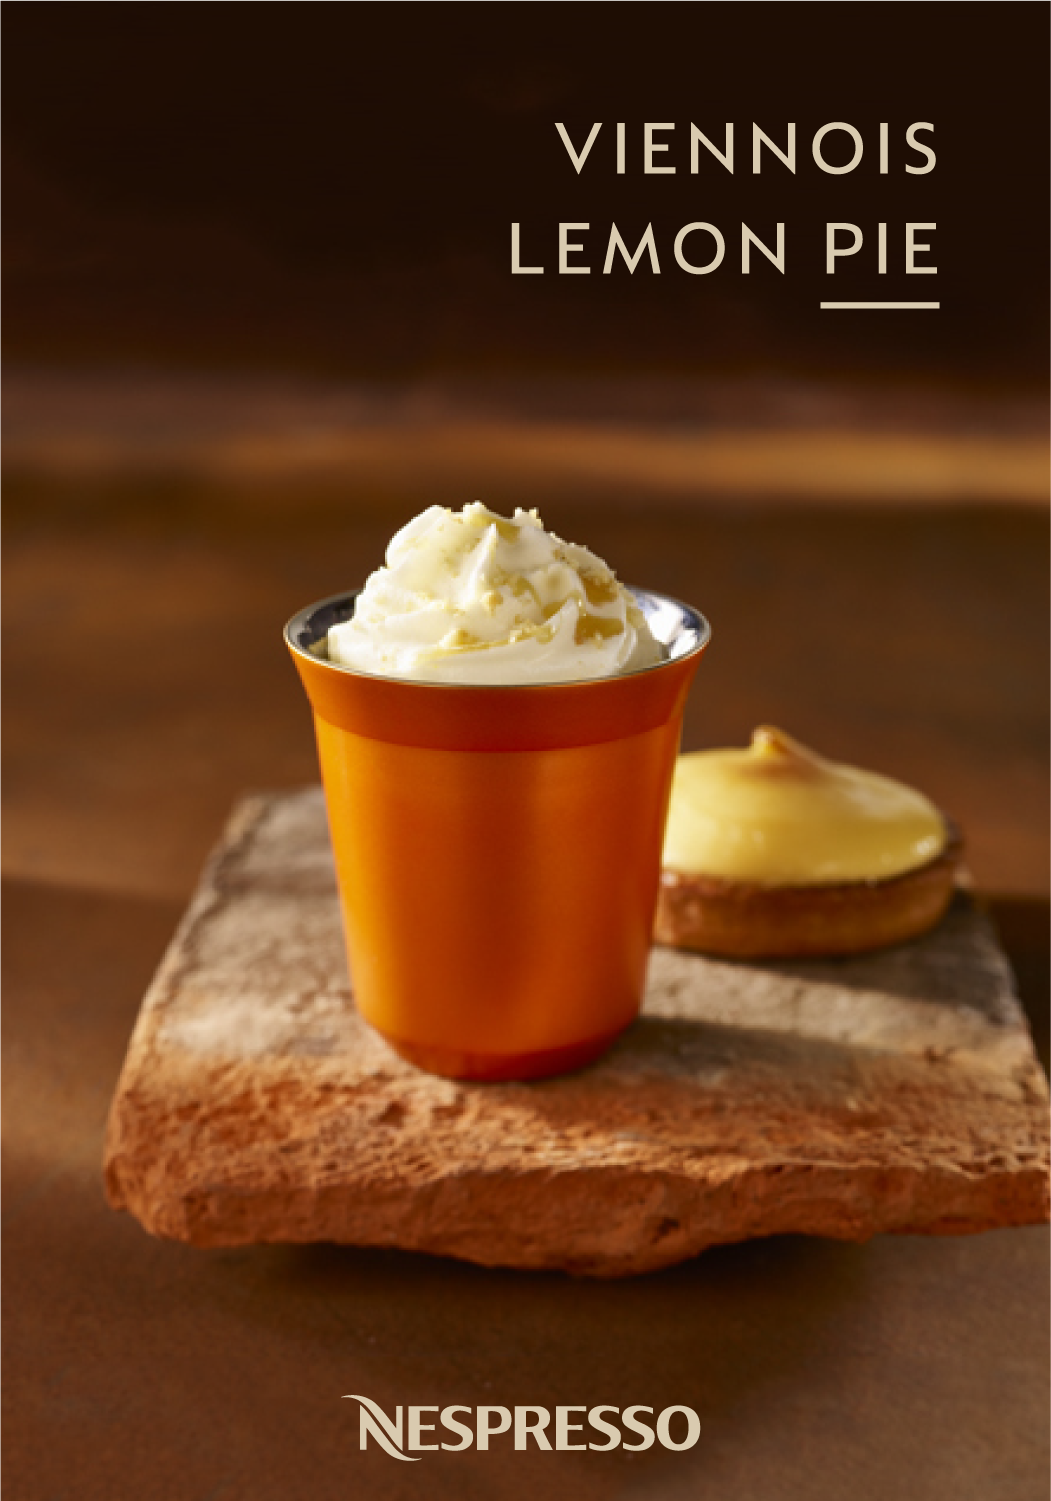 Sometimes, you just need a little something sweet to finish off your day. Check out this Viennois Lemon Pie recipe from Nespresso for an indulgent treat that you'll look forward to all day long. Savor the richness of Linizio Lungo Grand Cru as it mixes with cream, lemon pie syrup, and honey. Finish off with a fleur de sol biscuit for a sweet dessert coffee that's hard to beat.